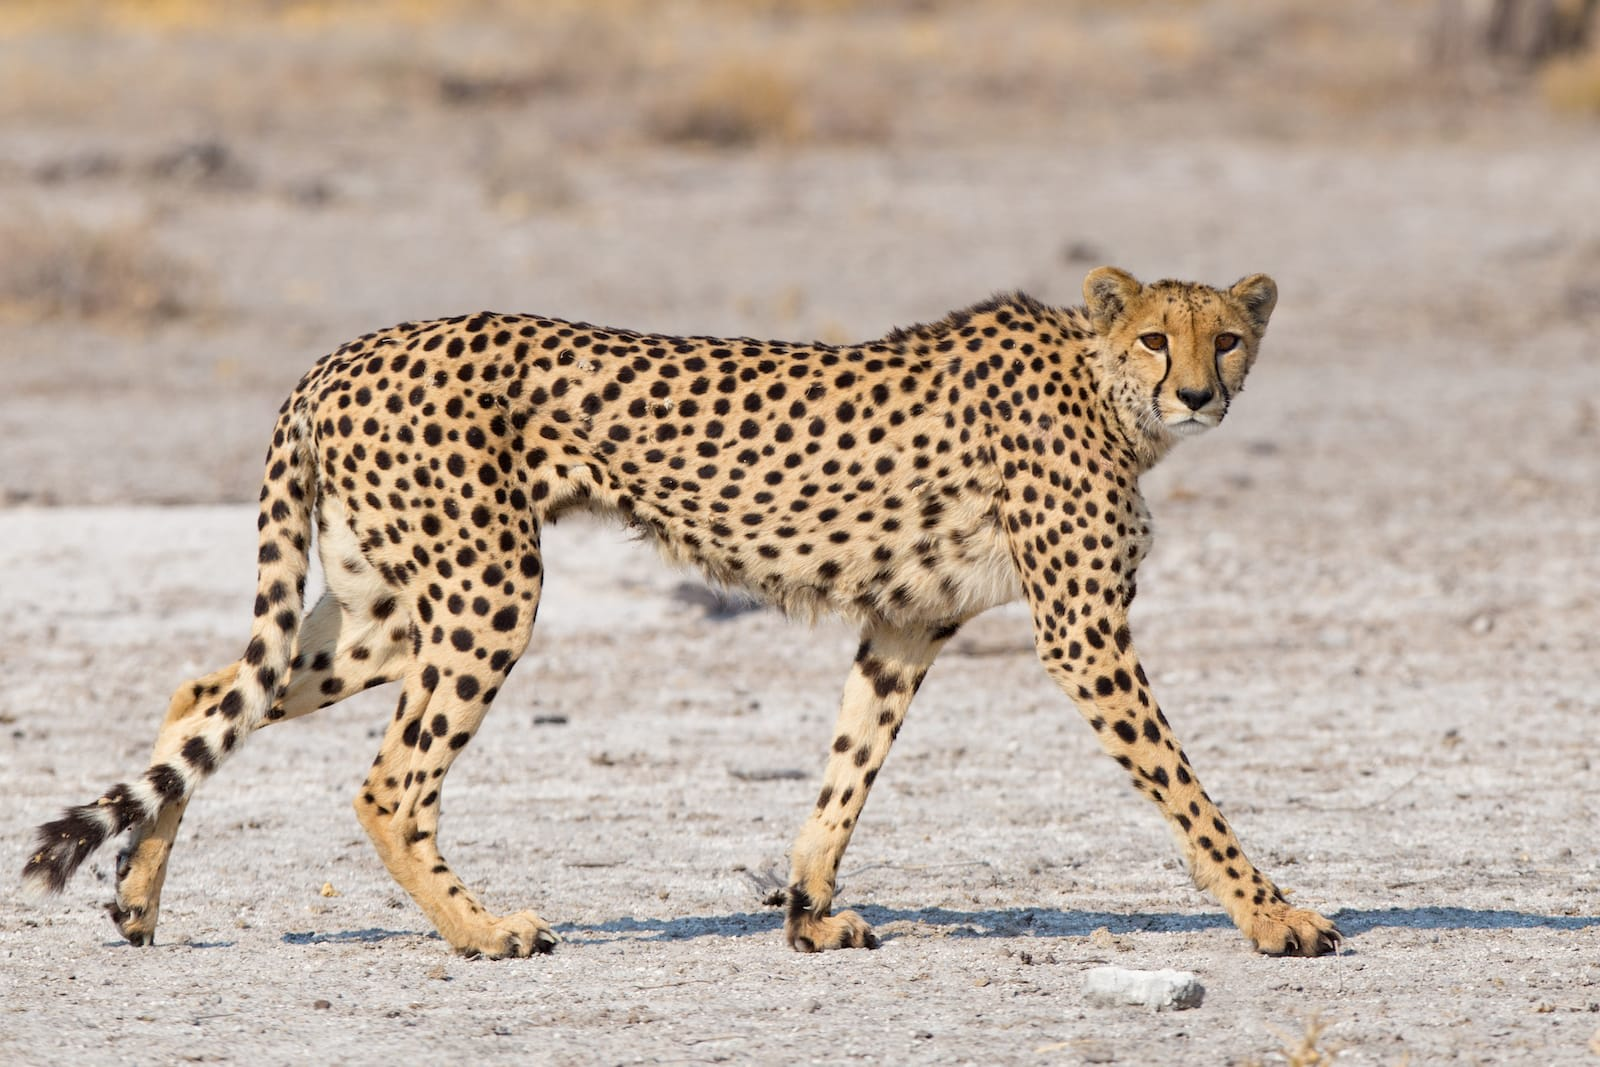 The cheetah is built for speed. It has long, thin legs, a flattened rib-cage and small head that provides the least resistance when it cuts through air. Photo: Sue Berry/Shutterstock